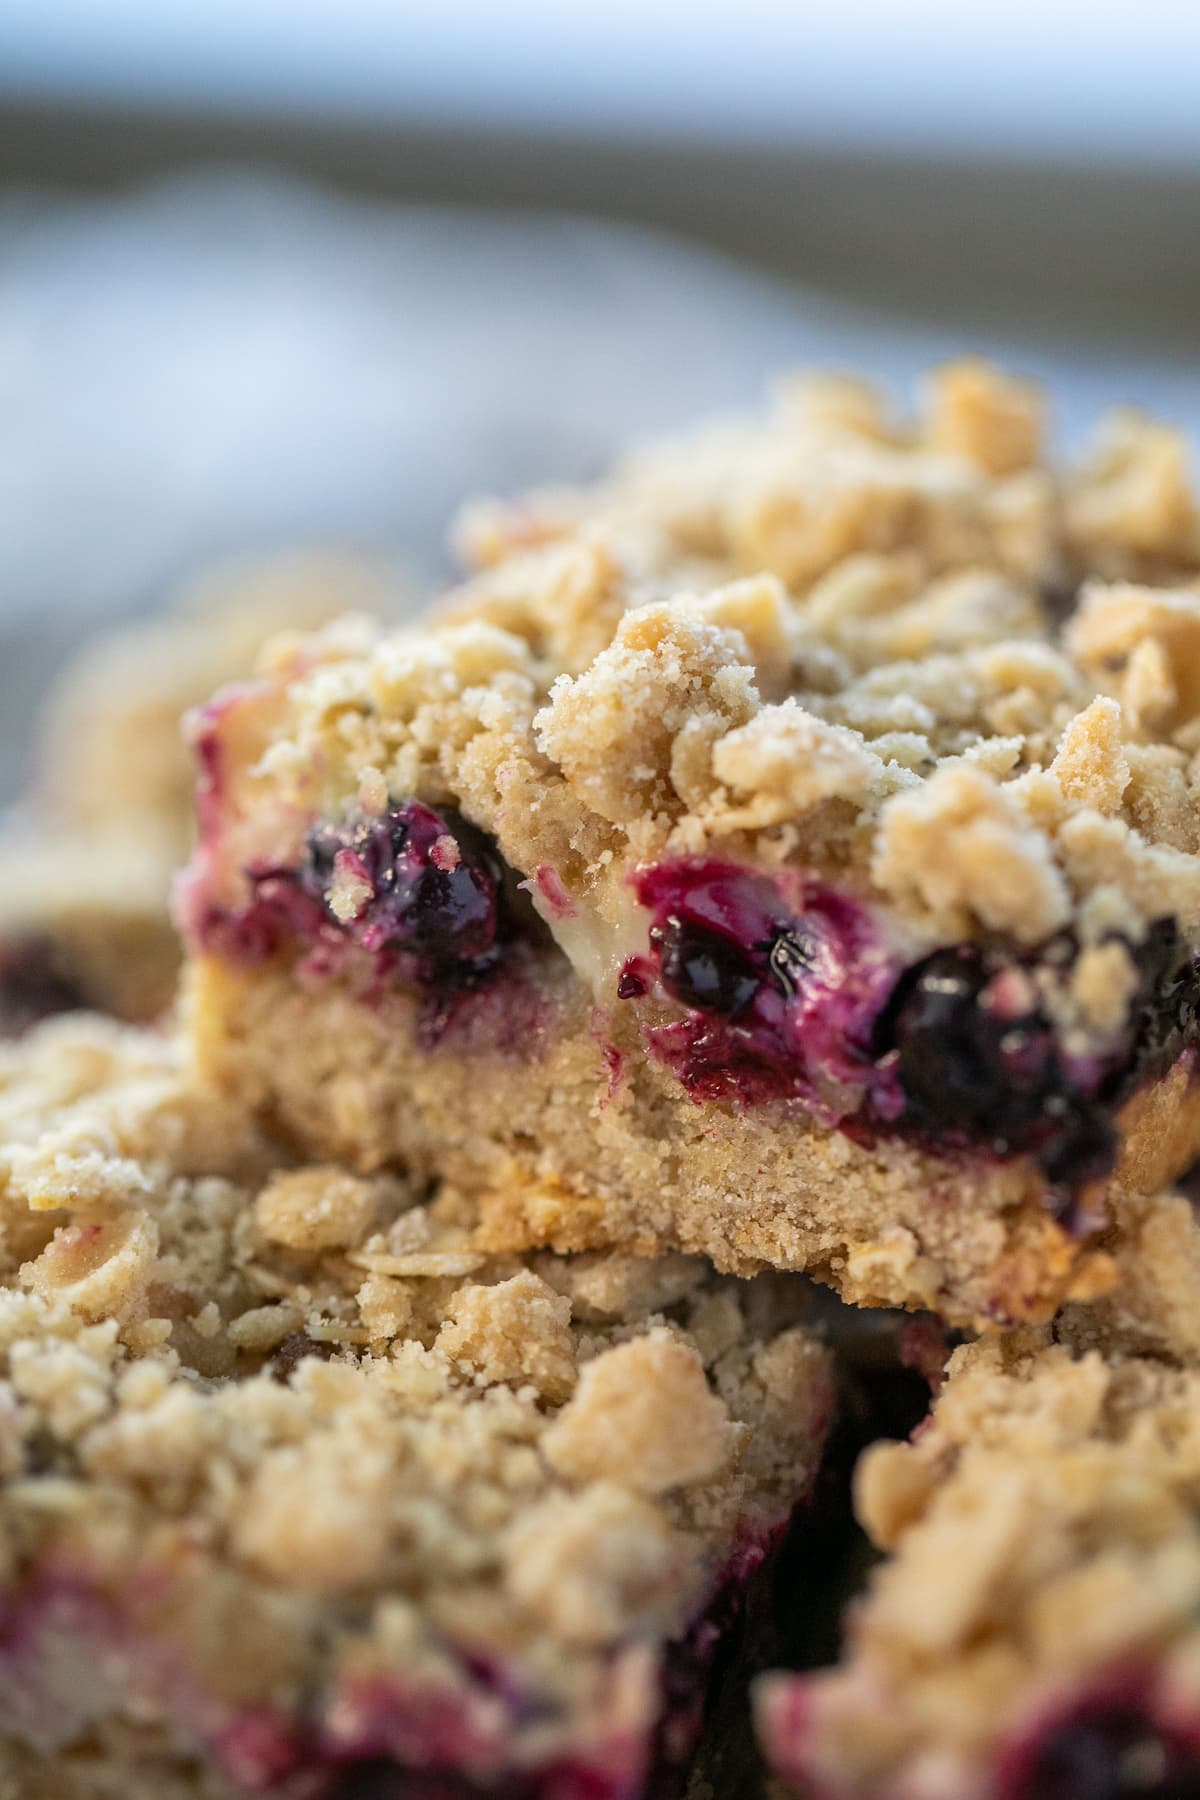 Delicious Lemon and blueberry bars